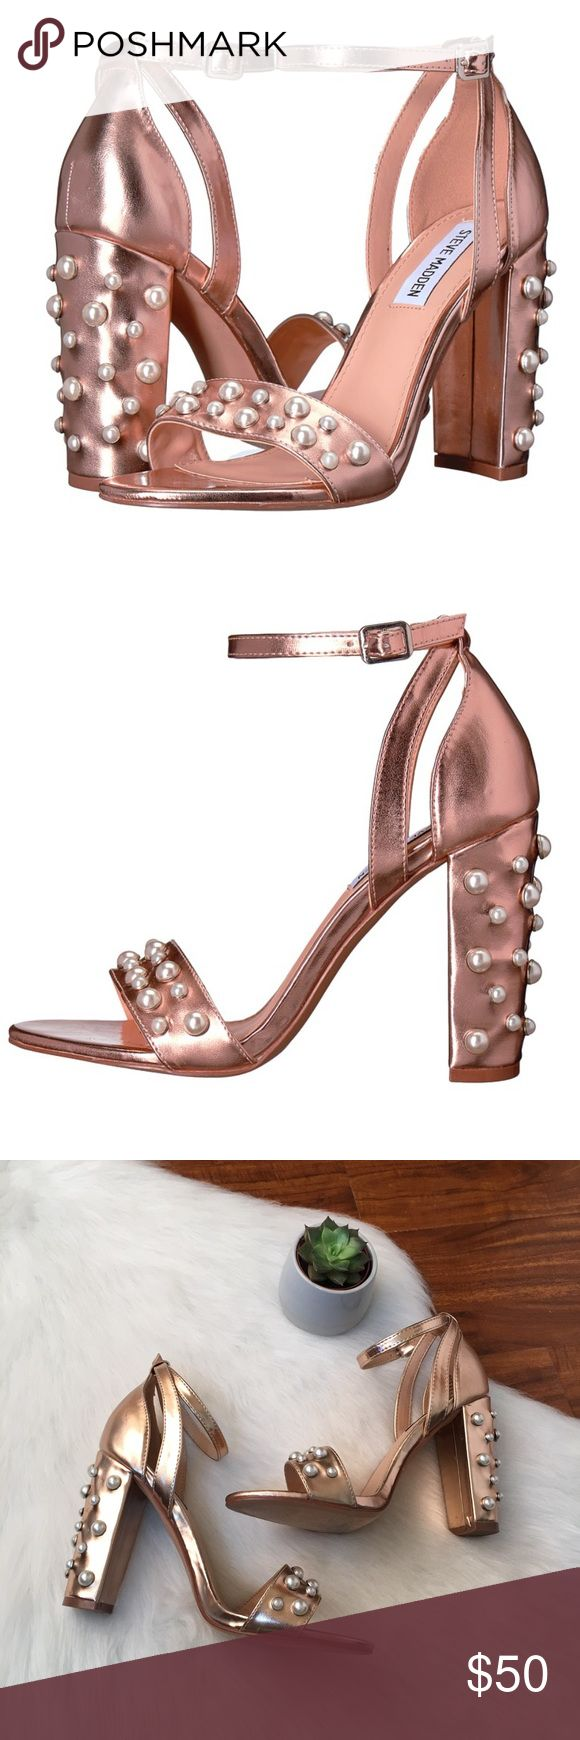 """Steve Madden """"Madeira"""" Rose Gold Studded Sandals Steve Madden """"Madeira"""" Rose Gold Studded Sandals   Brand new without box!  Women's size 8  Measurements: Heel 3.5 inches & platform 1/4 inch   ✨Synthetic upper with pearl embellishments  ✨Buckle closure @ ankle  ✨Single toe strap  ✨Synthetic insole & lining   No try ons or trades! Any questions please ask 💕 Steve Madden Shoes Heels"""